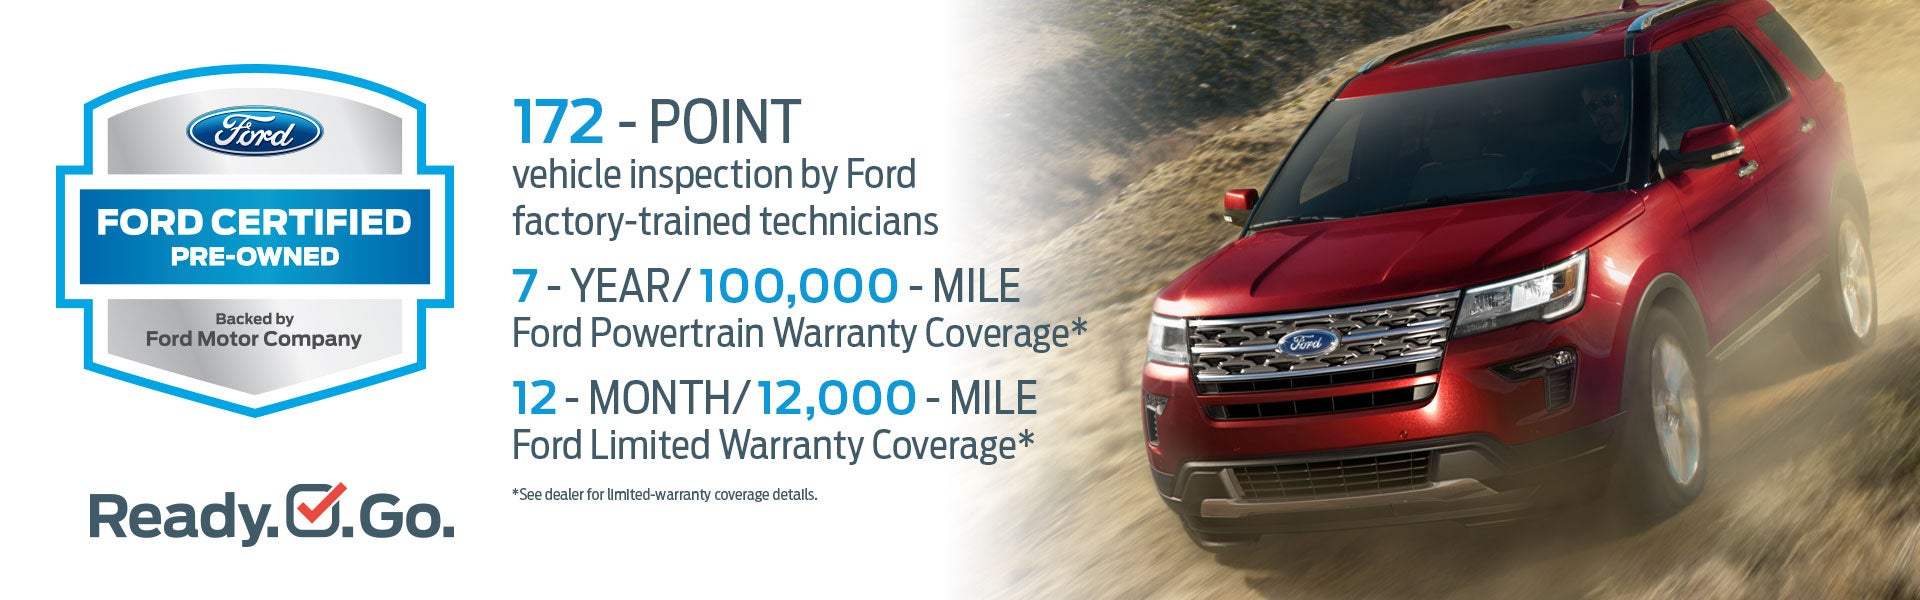 Holmes Tuttle Ford >> Ford Dealer In Tucson Az Used Cars Tucson Holmes Tuttle